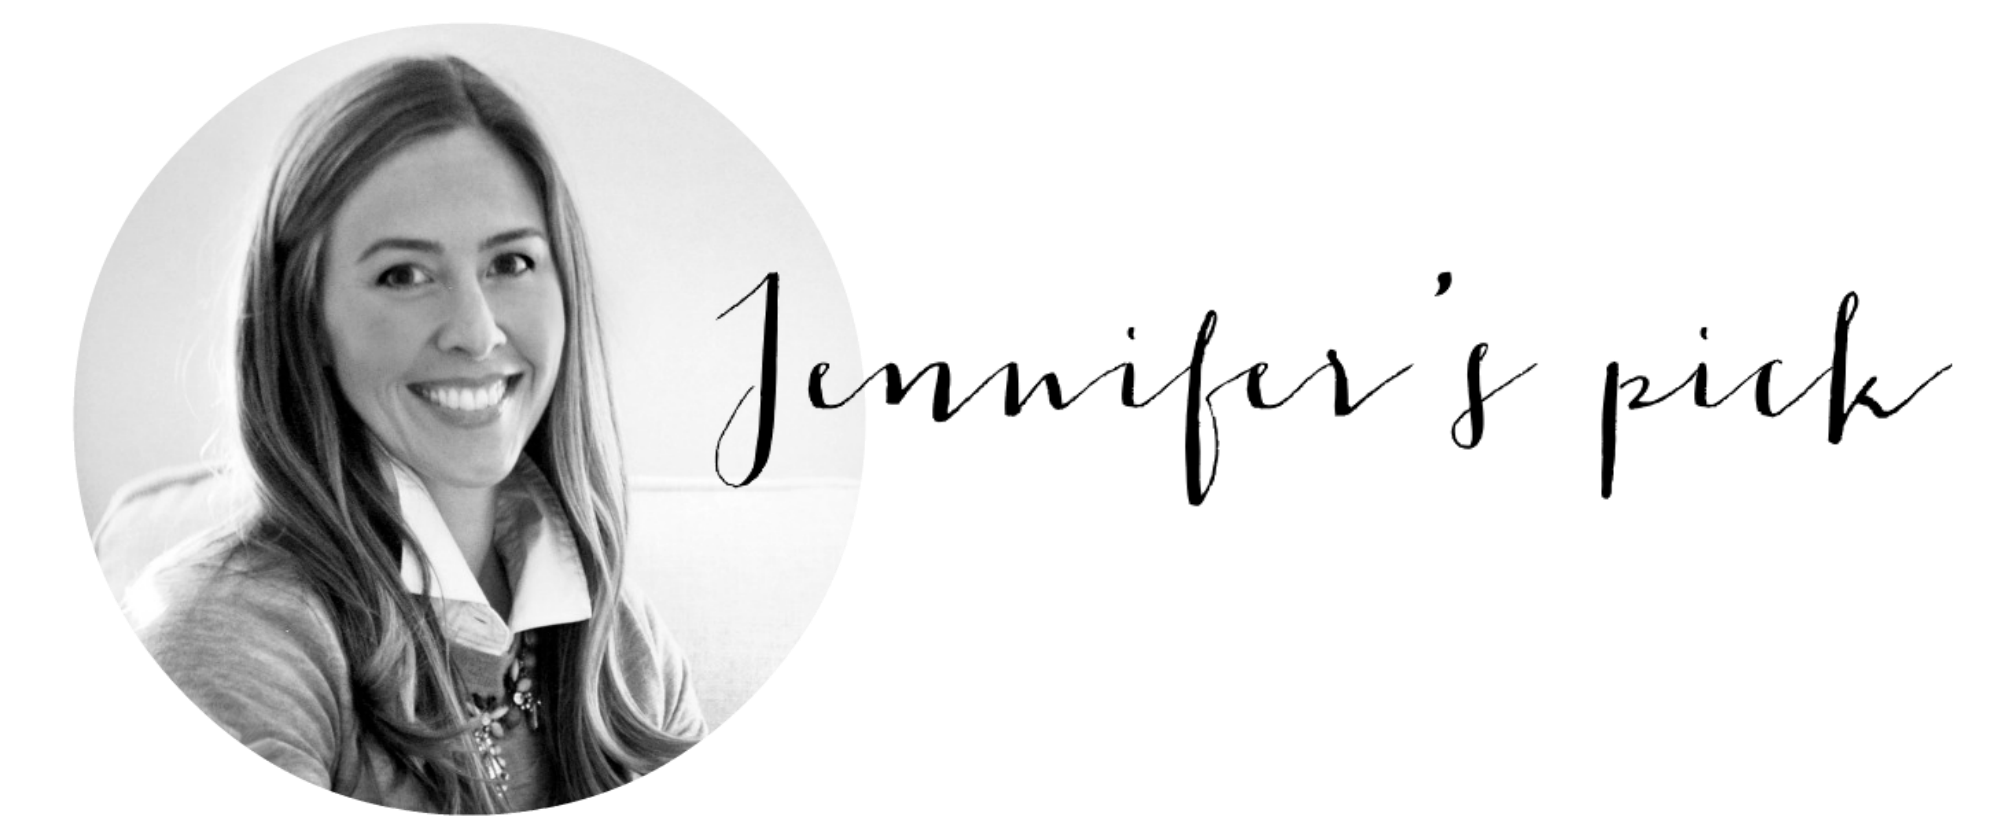 Jennifer'spickgraphic